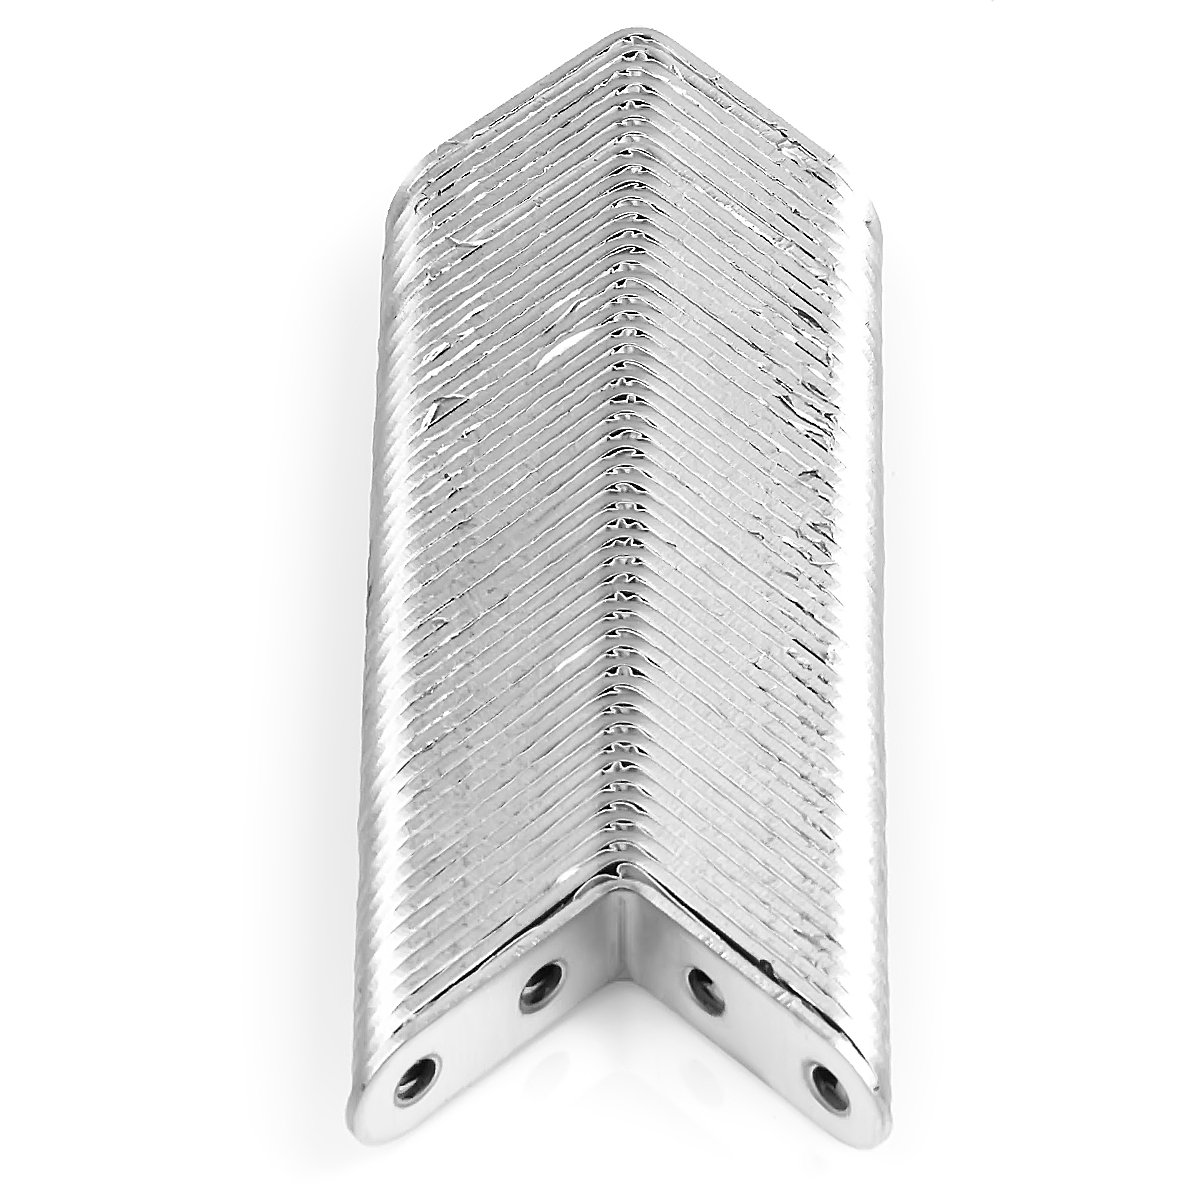 40mm x 40mm x 16mm Eliseo 50 Pack Stainless Steel 90 Degree Angle L Shaped Bracket,Corner Brace Joint Bracket Fastener 4 Holes Silver Tone Round End Heavy Duty Metal